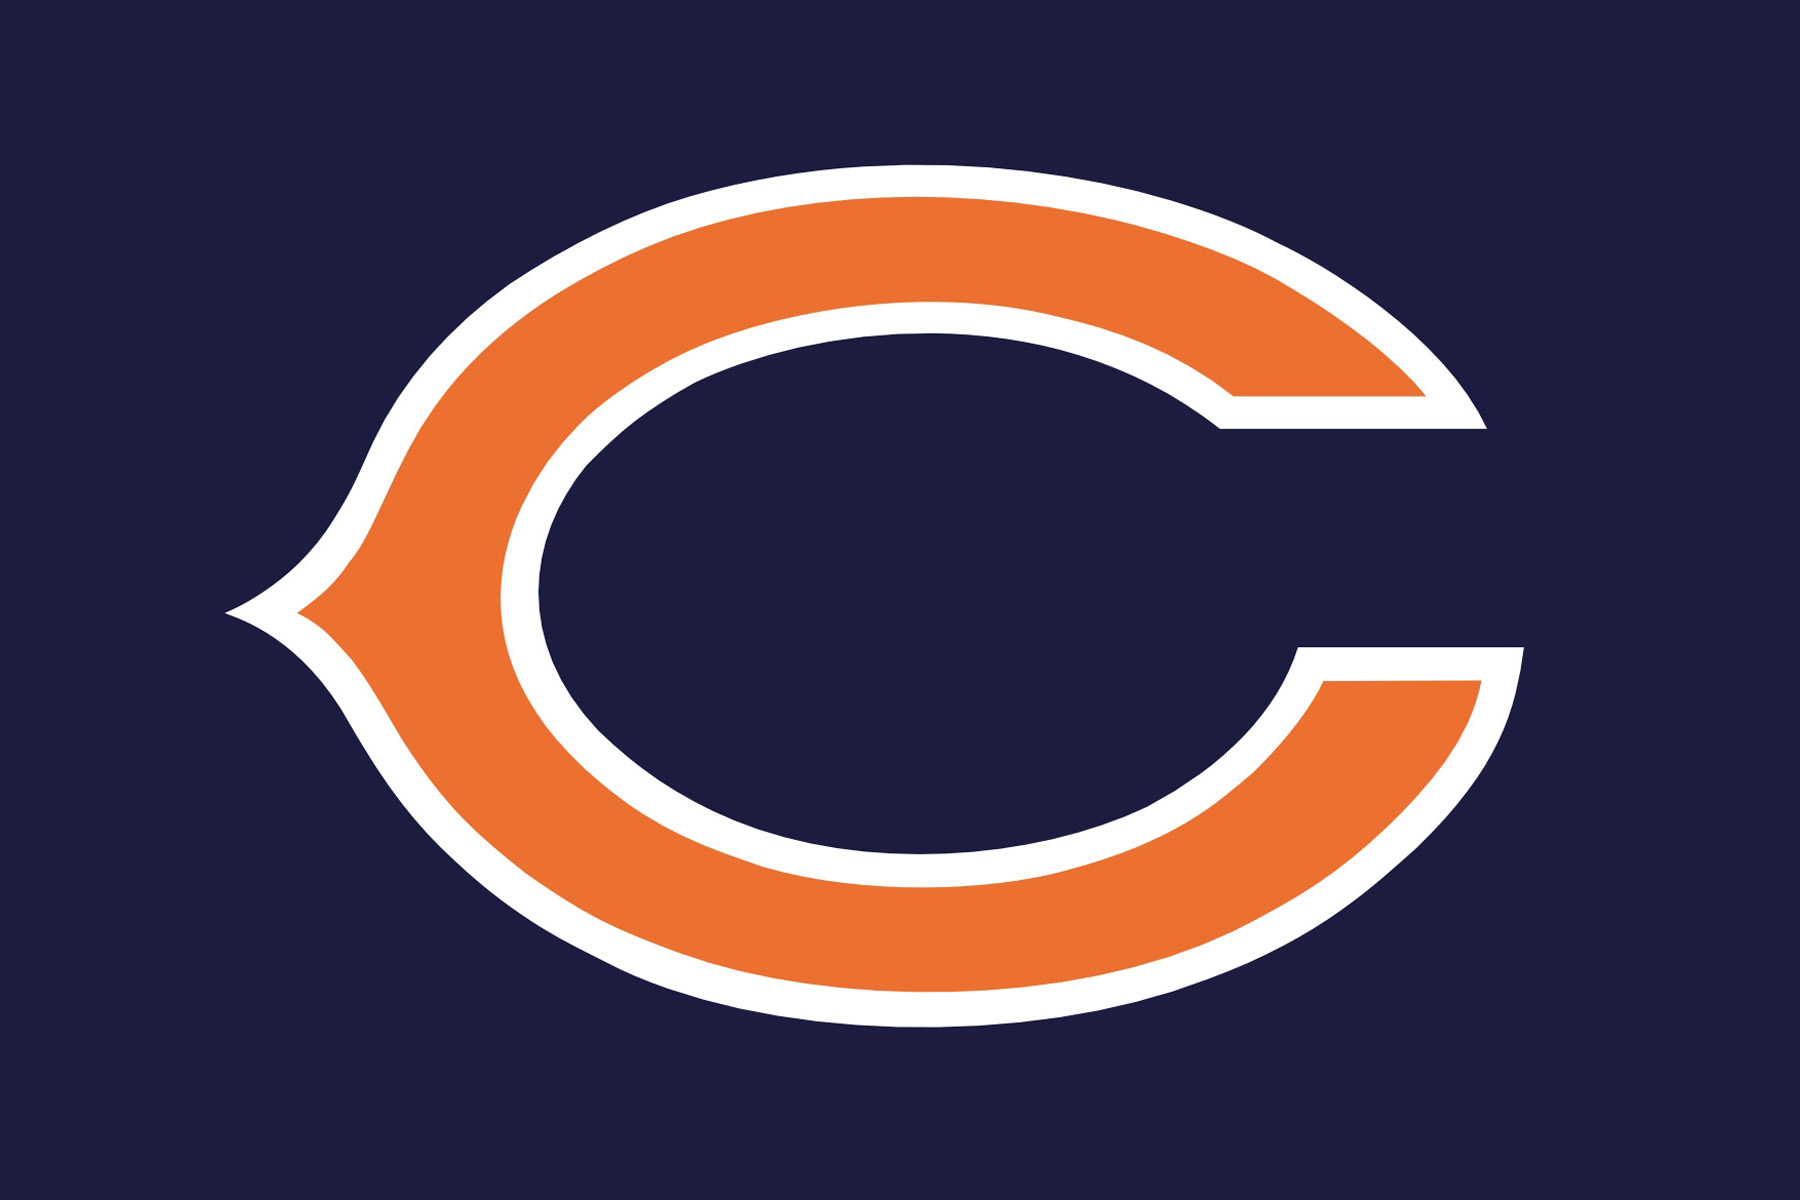 1800x1200 Chicago Bears Clip Art Amp Look At Chicago Bears Clip Art Clip Art